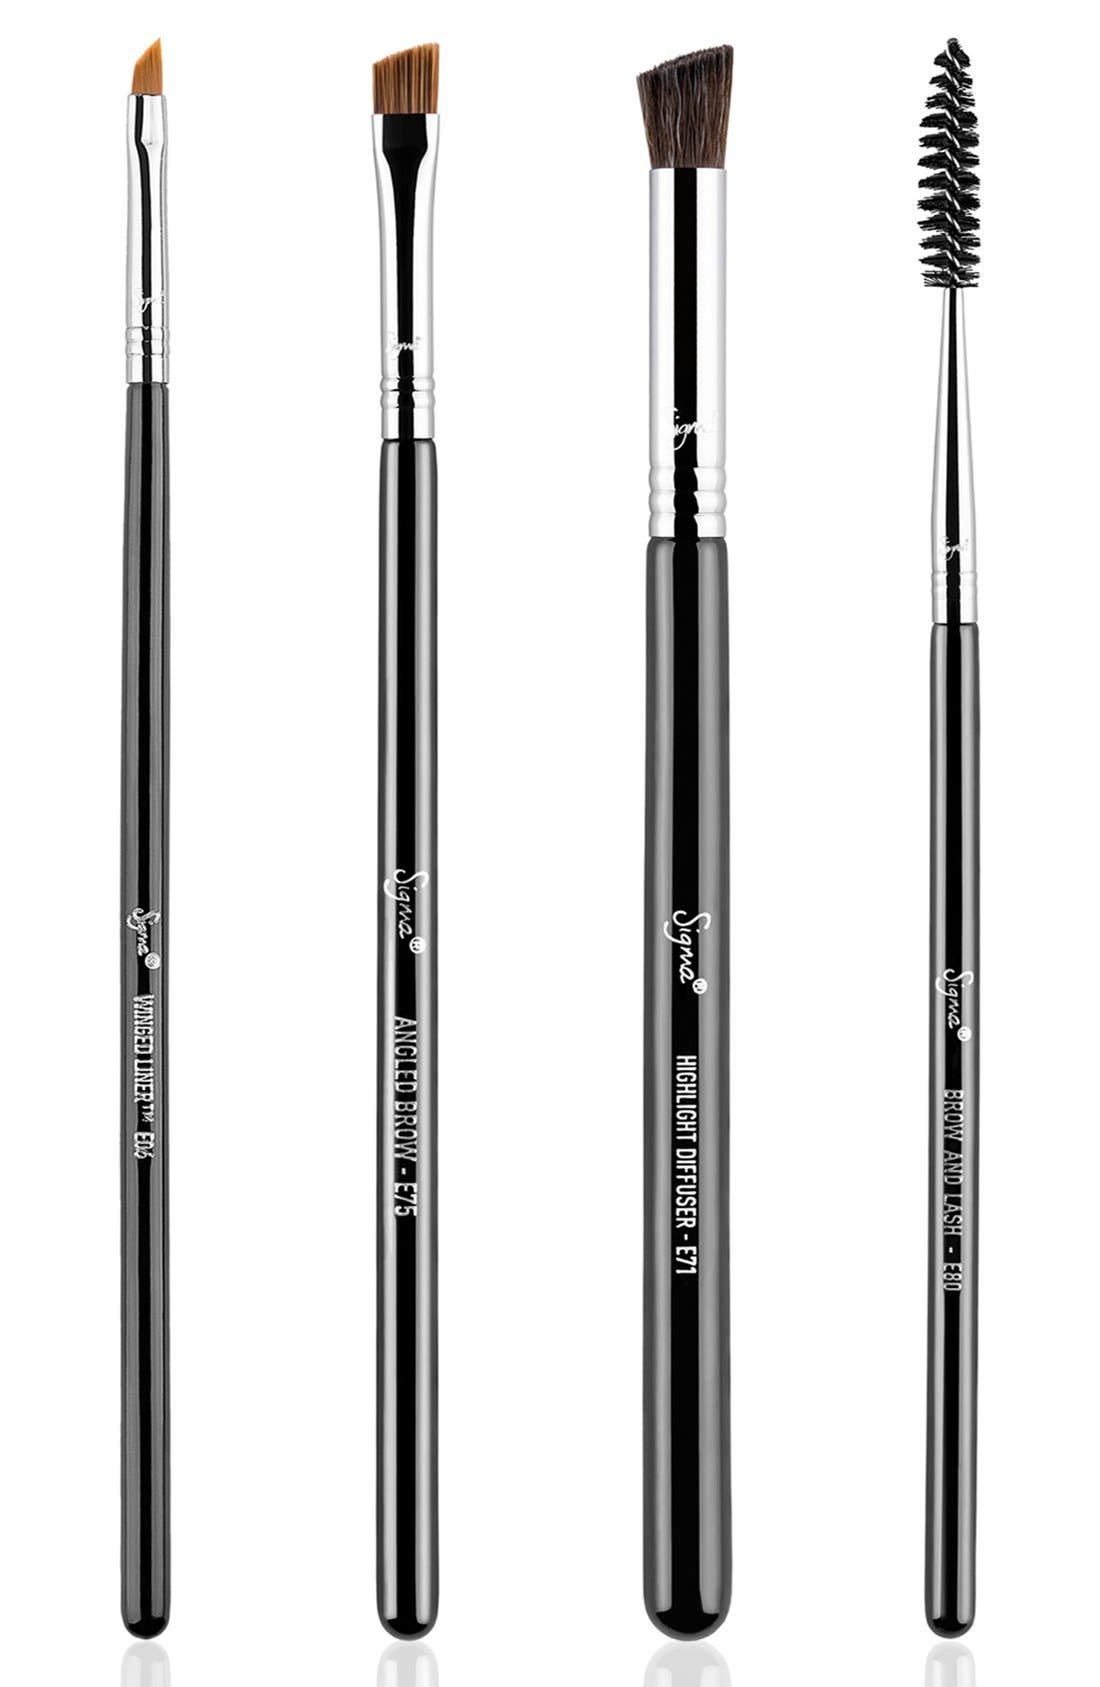 Sigma Beauty 'Brow Goals' Brush Set (Limited Edition) ($63 Value)